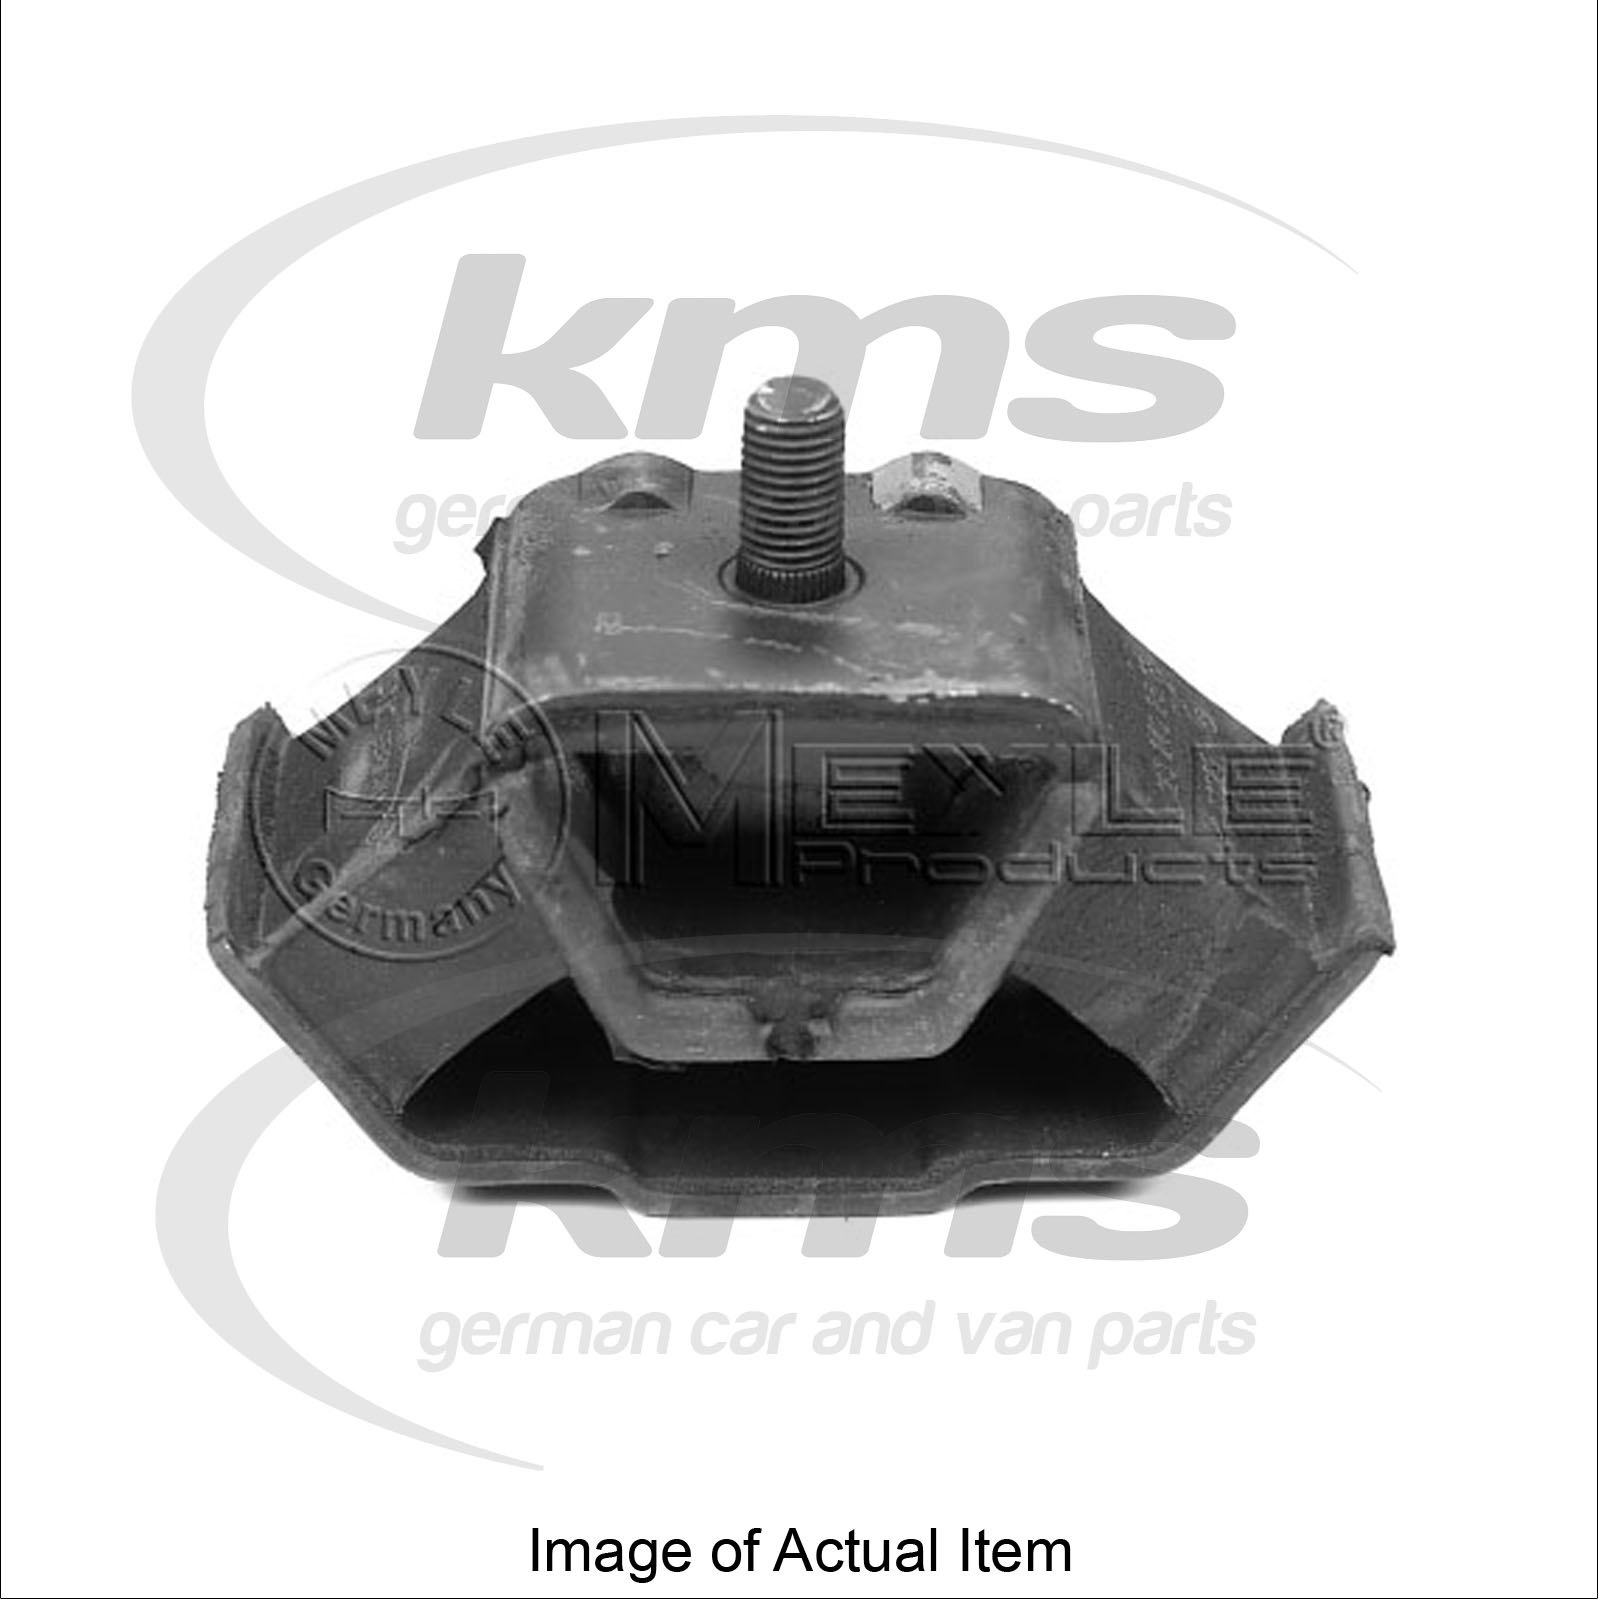 Mounting for manual transmission mercedes s class w126 for Mercedes benz manual transmission